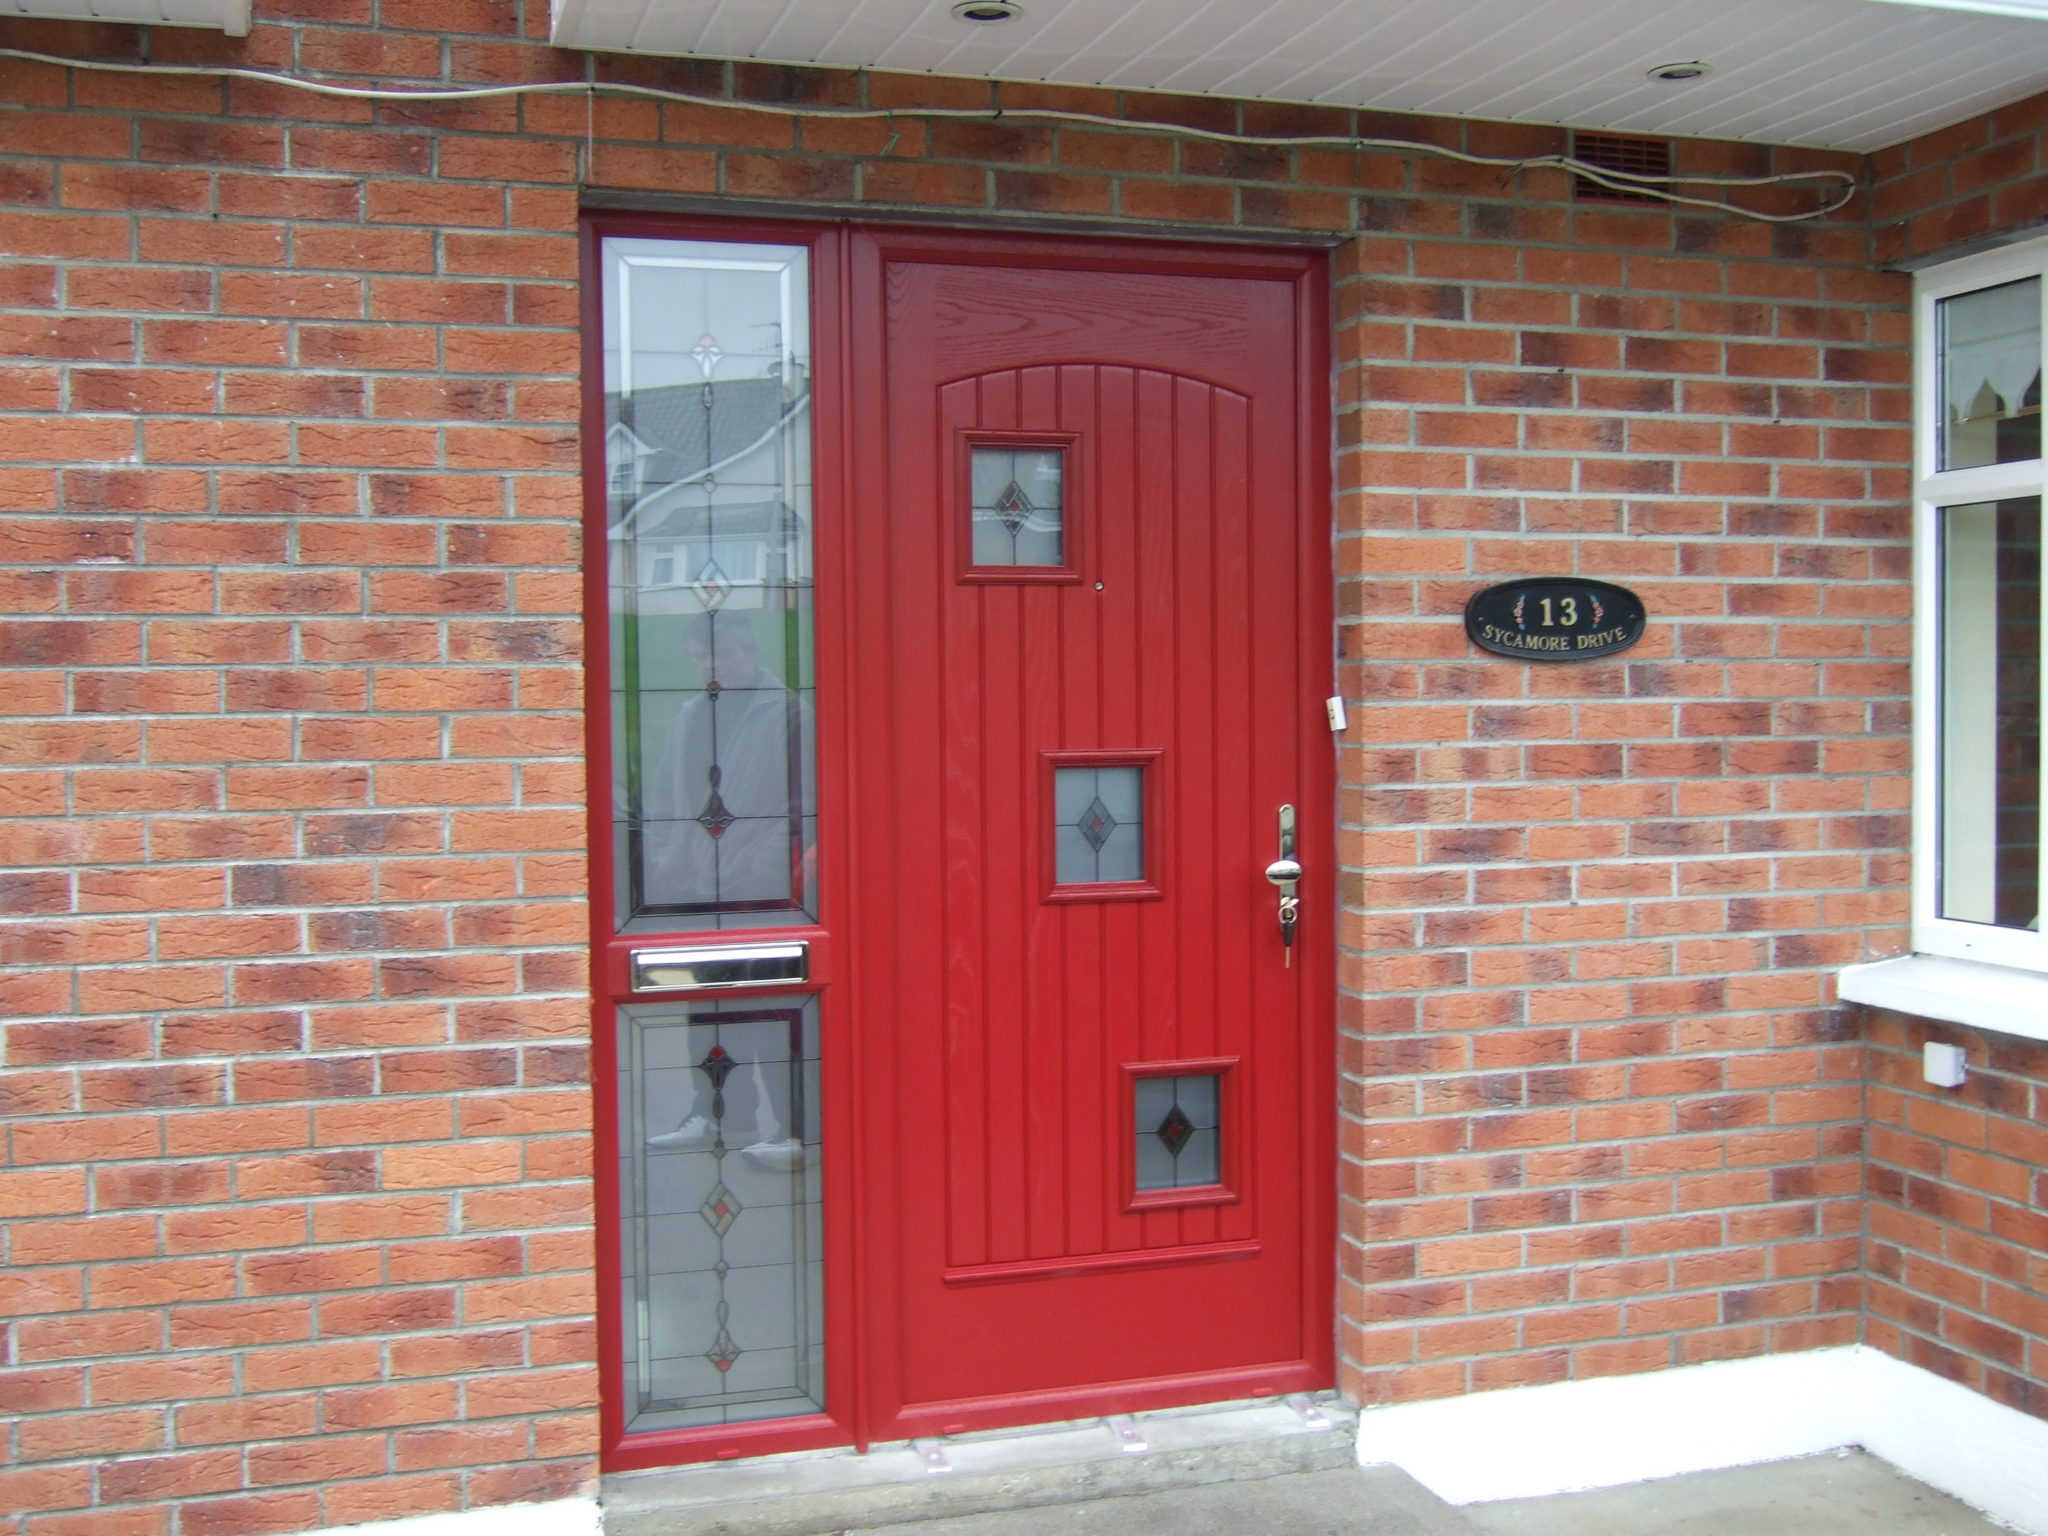 London Palladio Door Style - The Palladio Door Collection